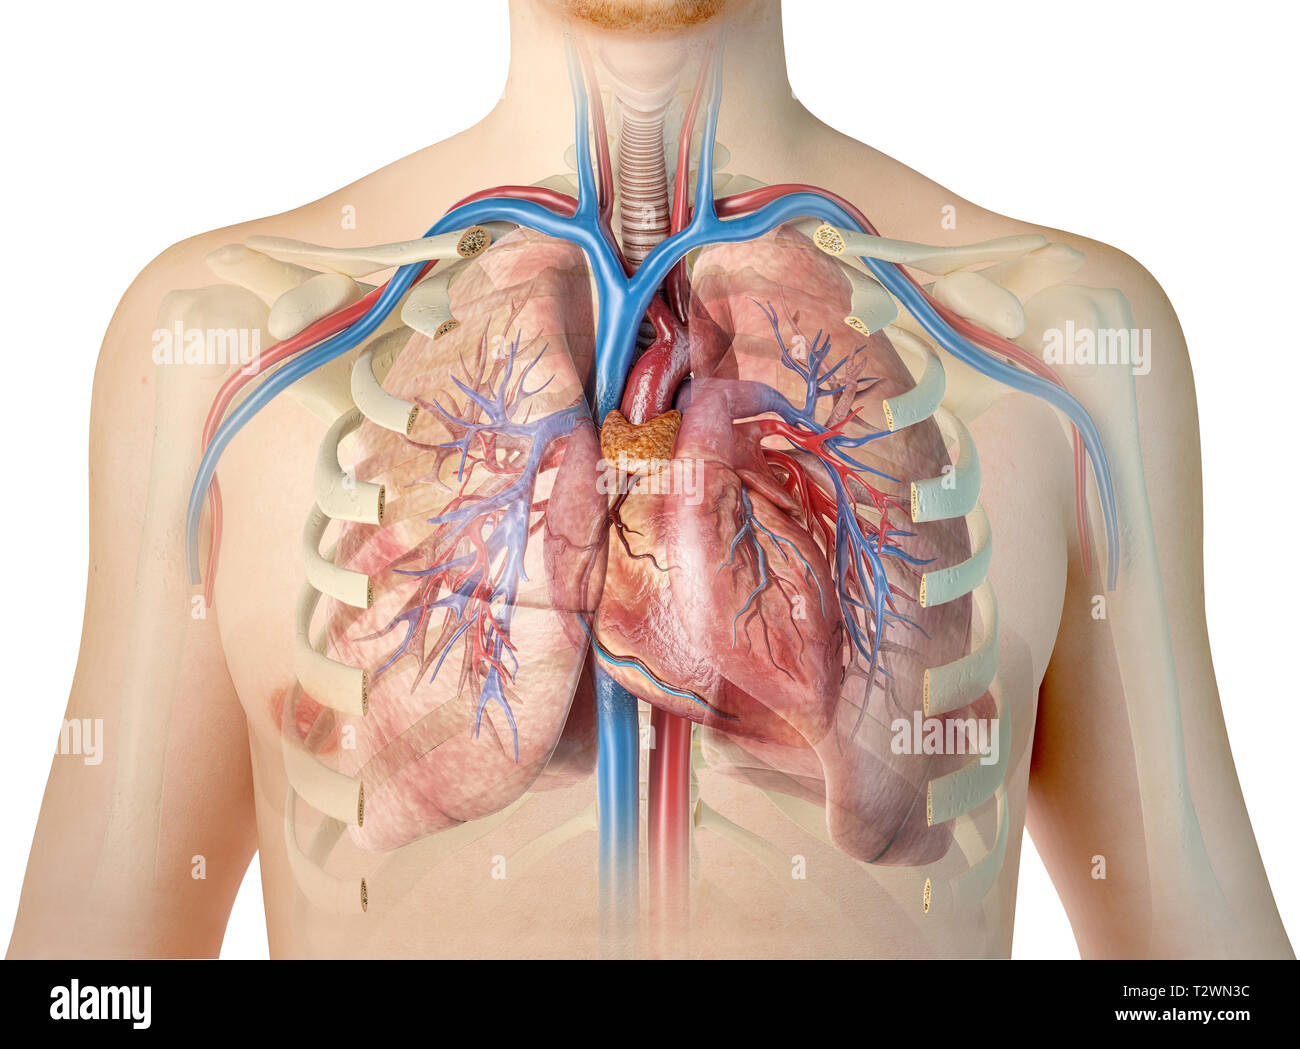 hight resolution of human heart with vessels lungs bronchial tree and cut rib cage on white